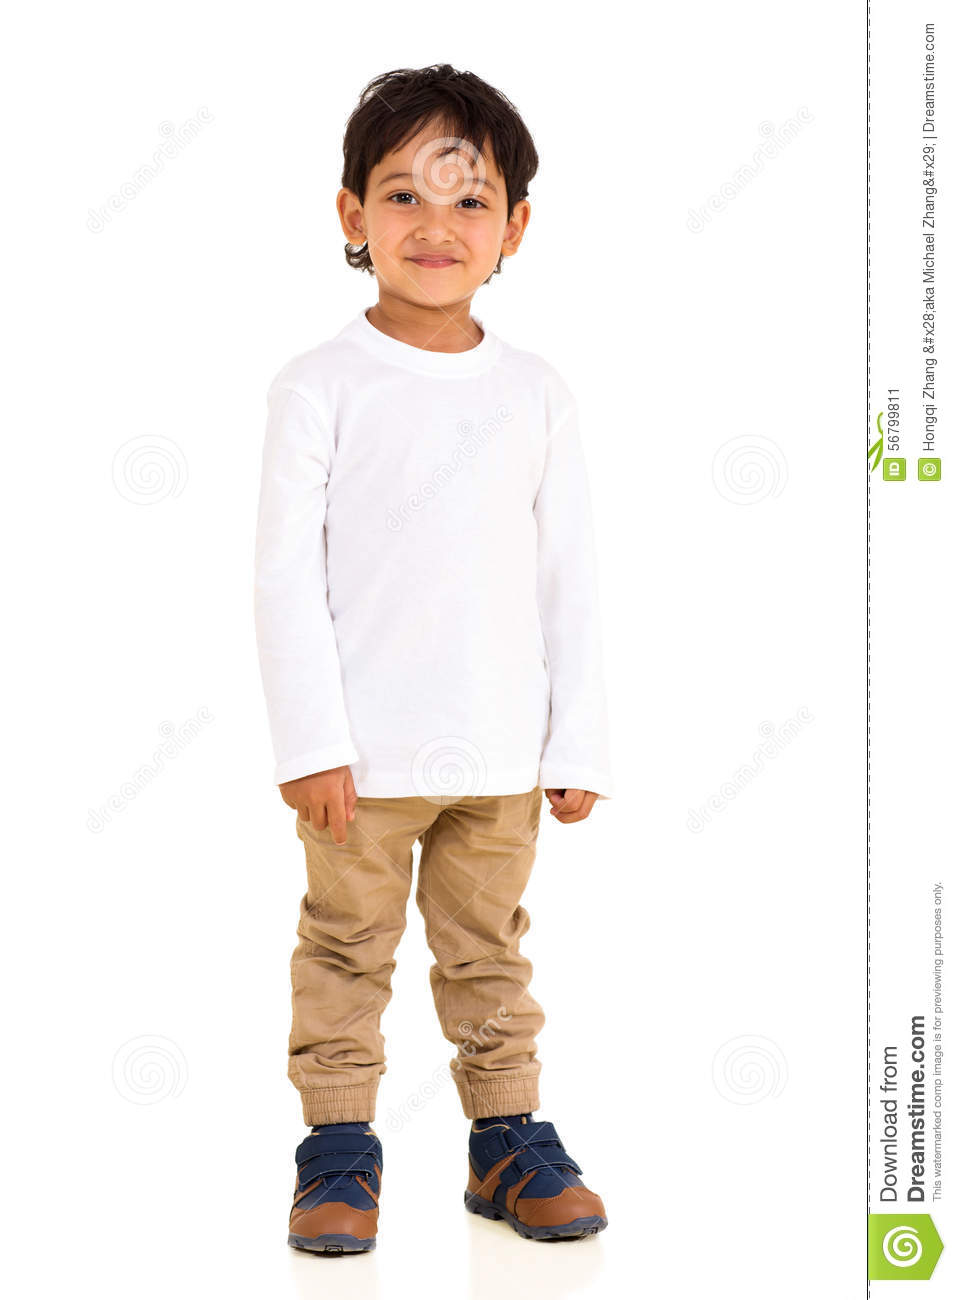 indian boy standing stock image image of little looking